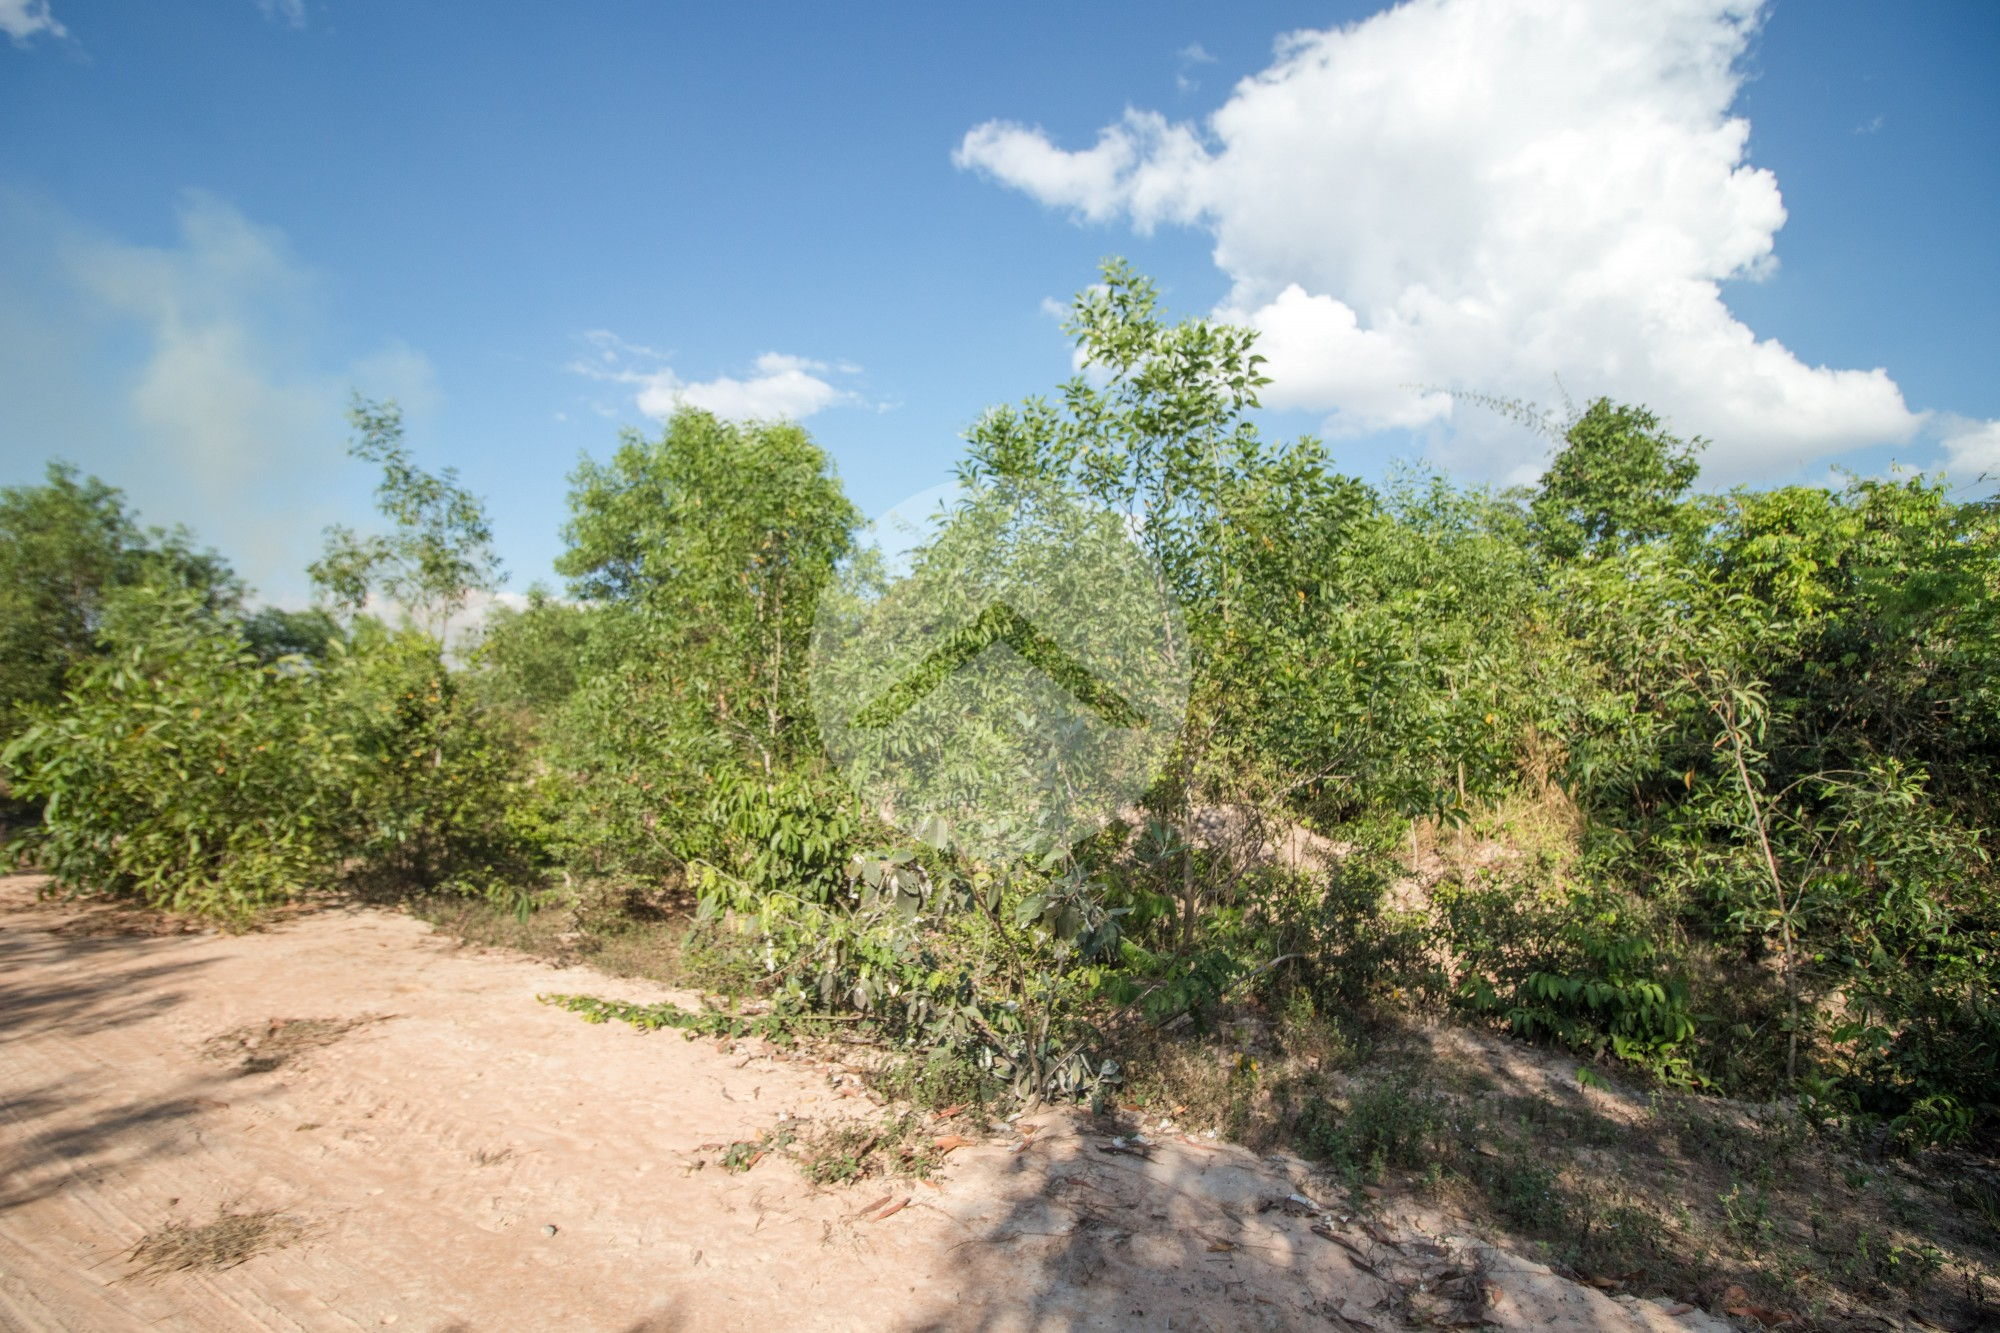 6.2 Hectare Land For Sale - Nokor Thum, Siem Reap